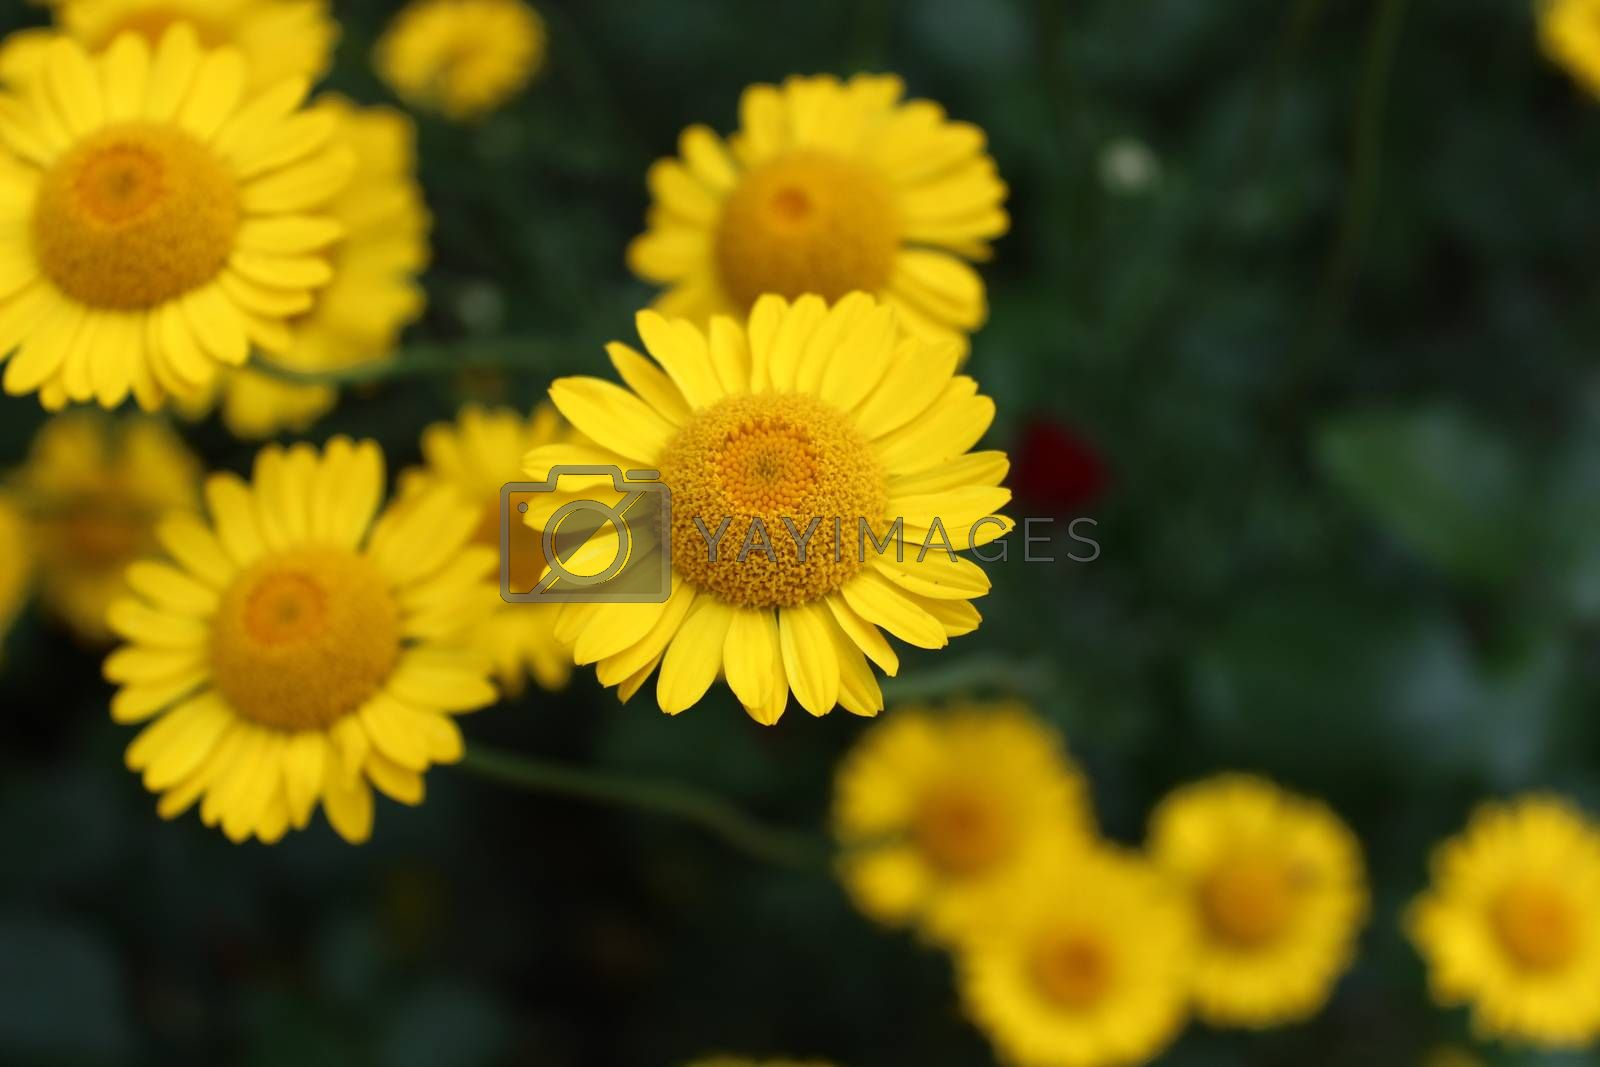 Royalty free image of Yellow flowers in the garden by martina_unbehauen